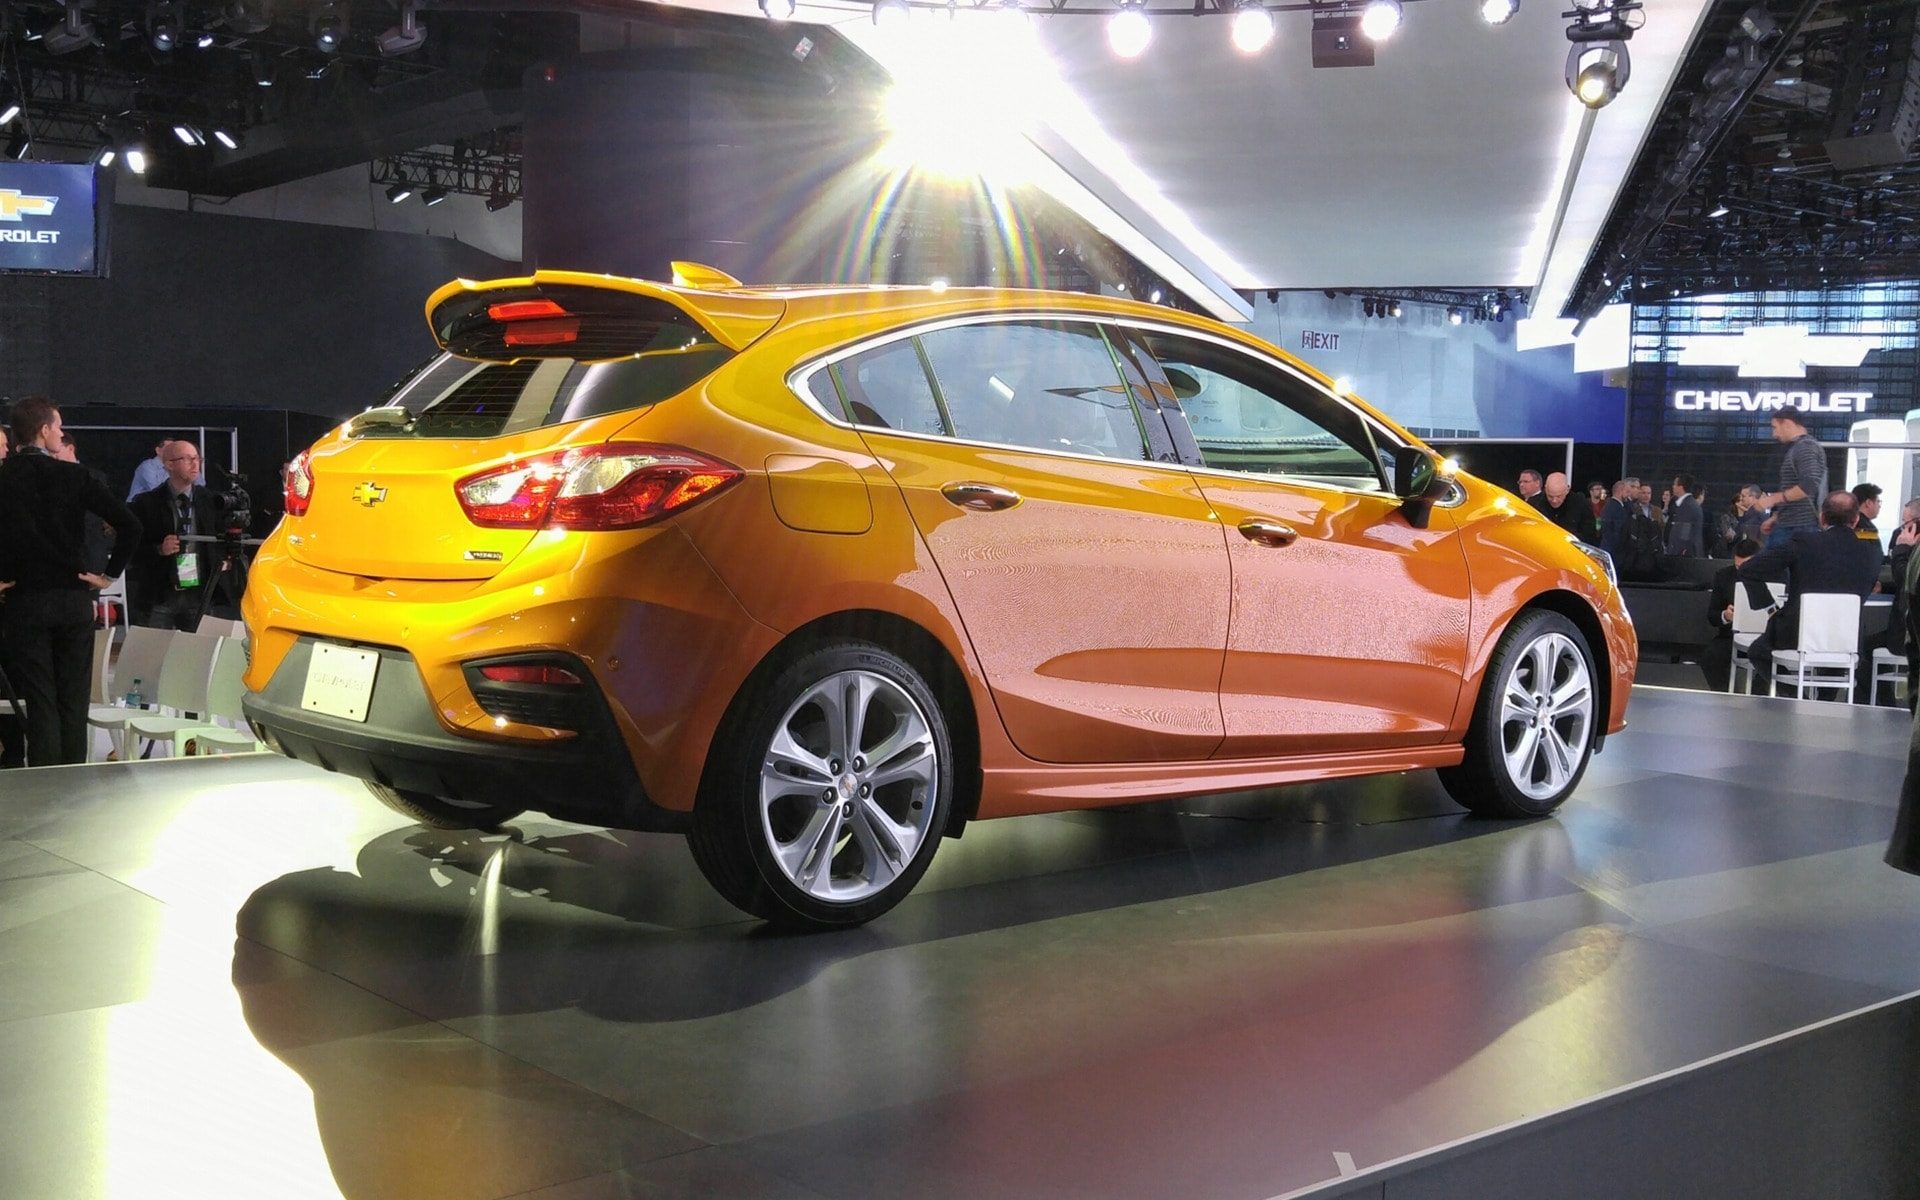 Chevrolet Cruze 2 Hatchback Widescreen